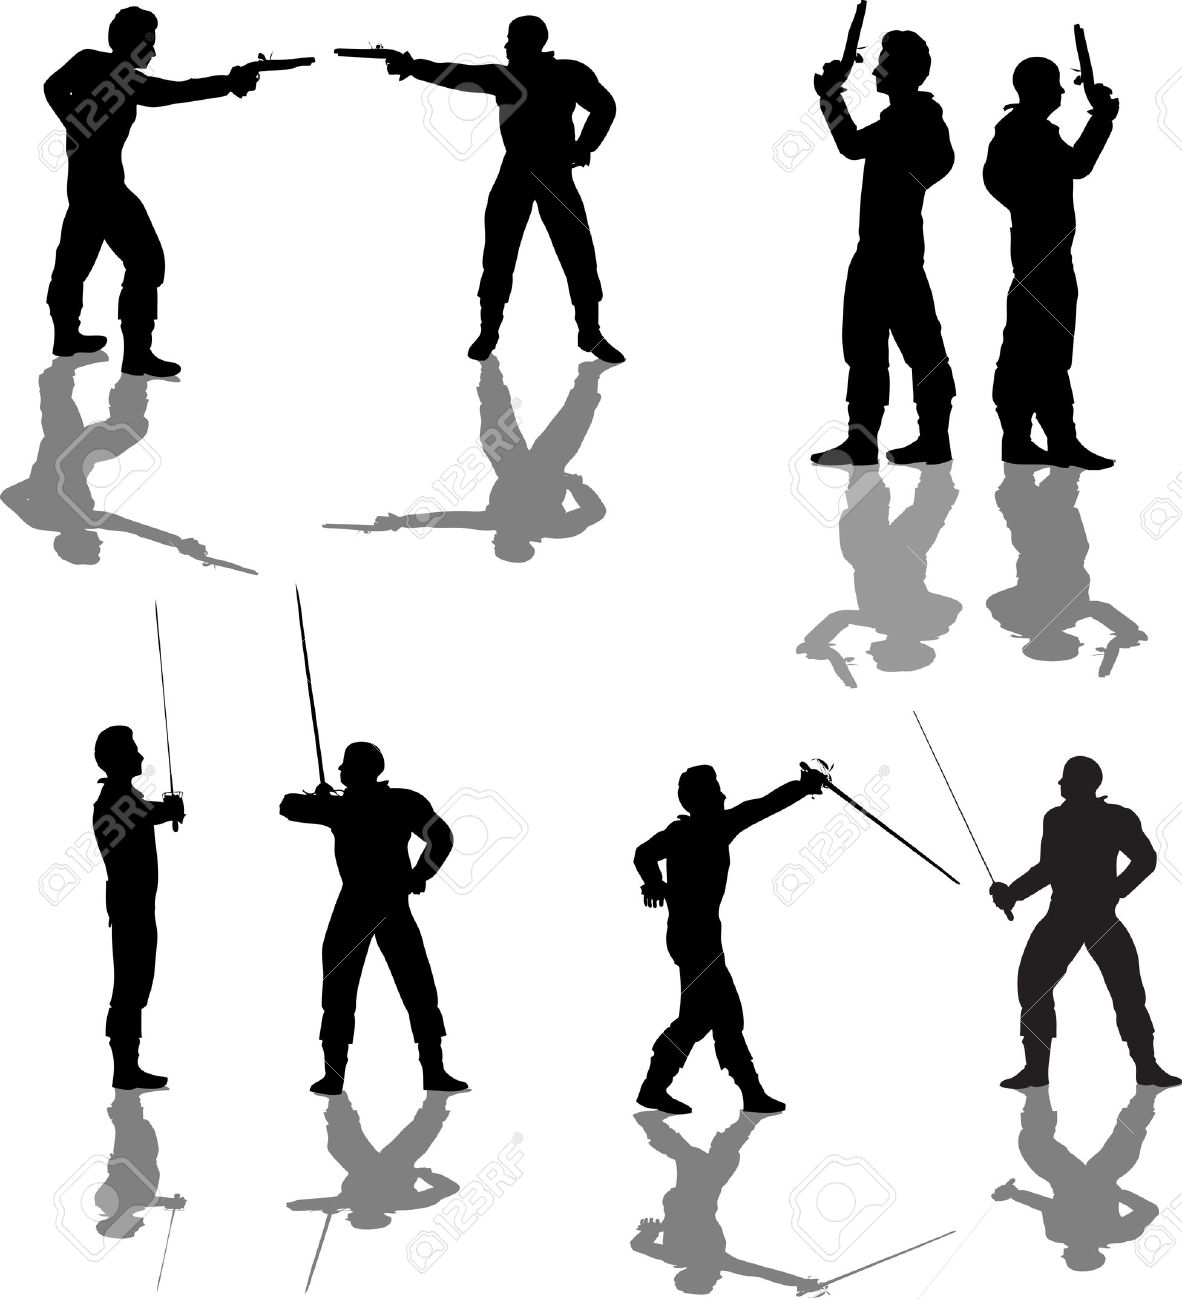 Duelist Silhouettes Royalty Free Cliparts, Vectors, And Stock.